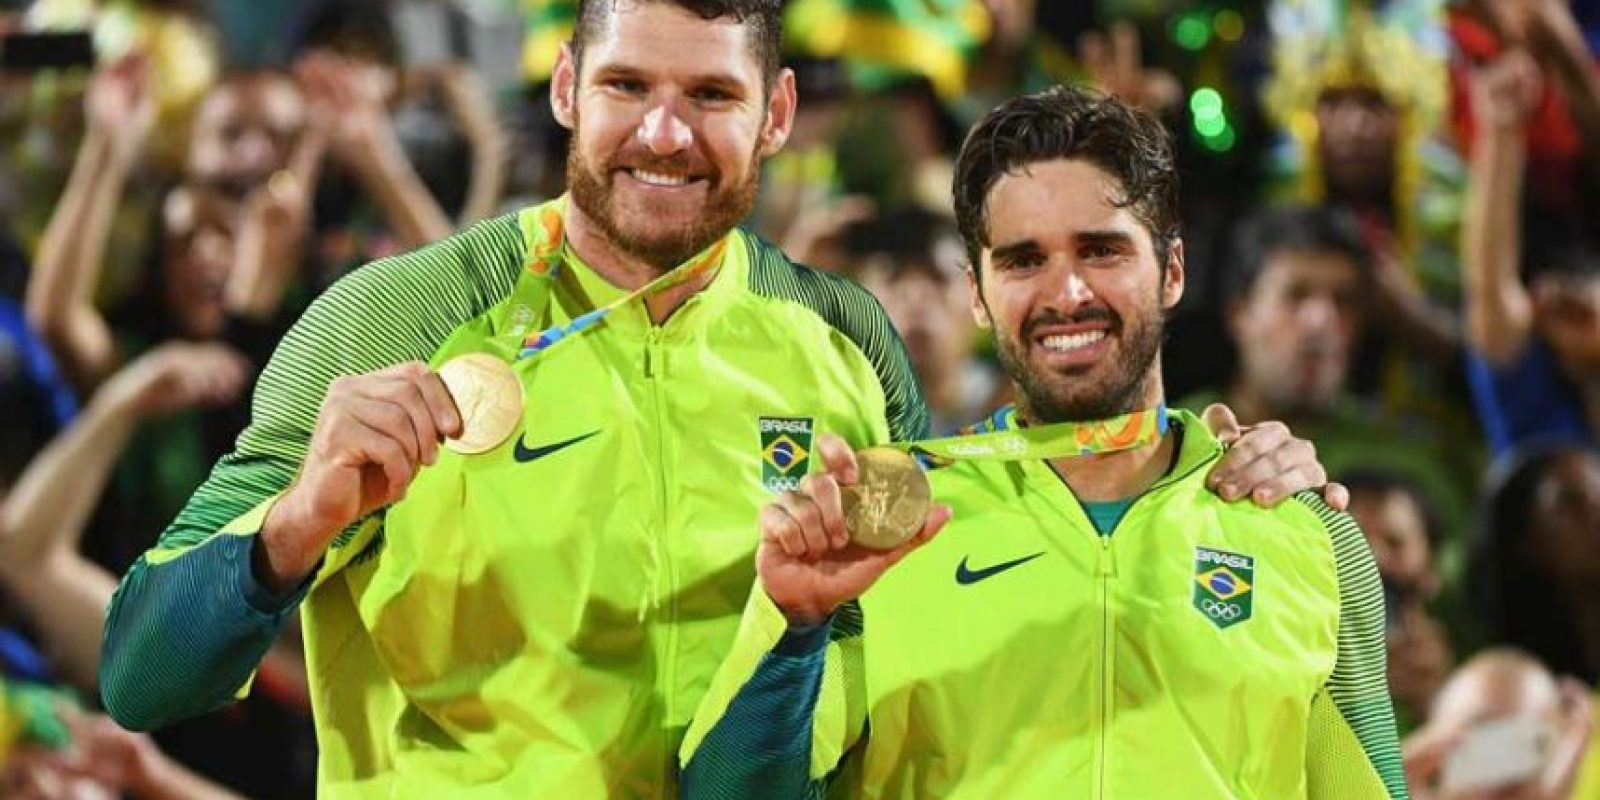 ORO: Brasil (Voléibol de playa) Foto: Getty Images